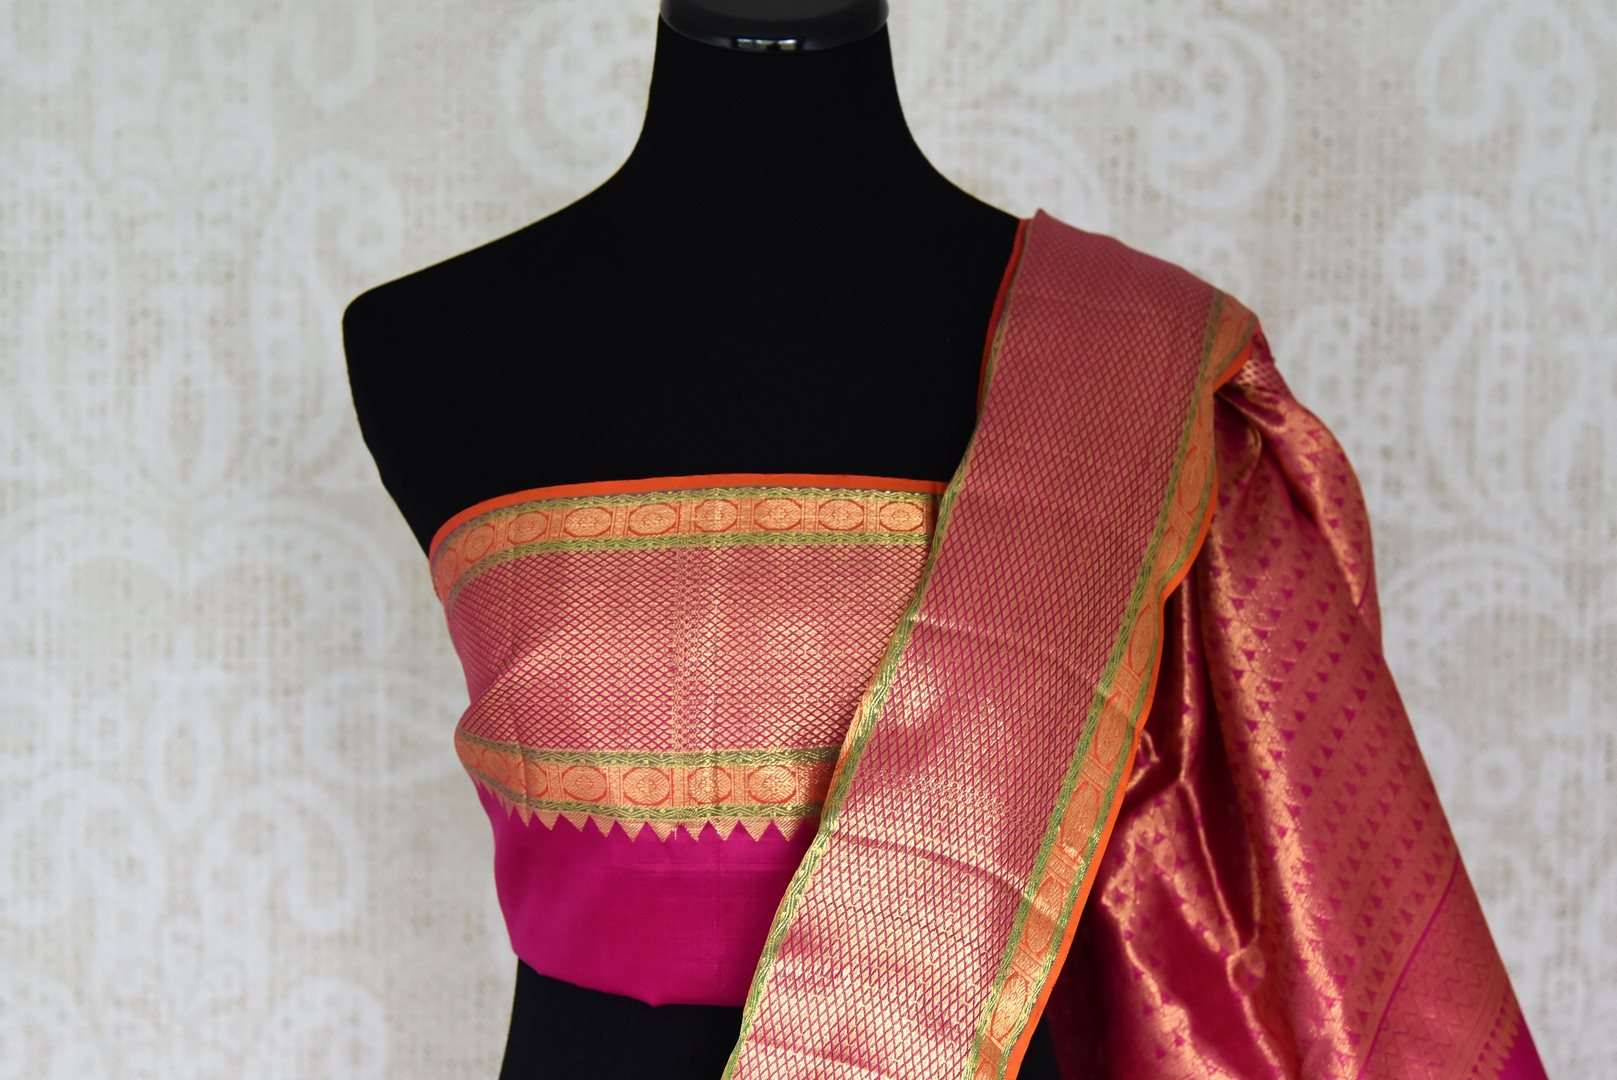 Buy off-white Kanjivaram sari with multicolor zari border online in USA from Pure Elegance. Be an epitome of Indian fashion on special occasions with beautiful designer sarees, Banarasi sarees, Kanchipuram silk sarees available at our Indian fashion store in USA. -blouse pallu